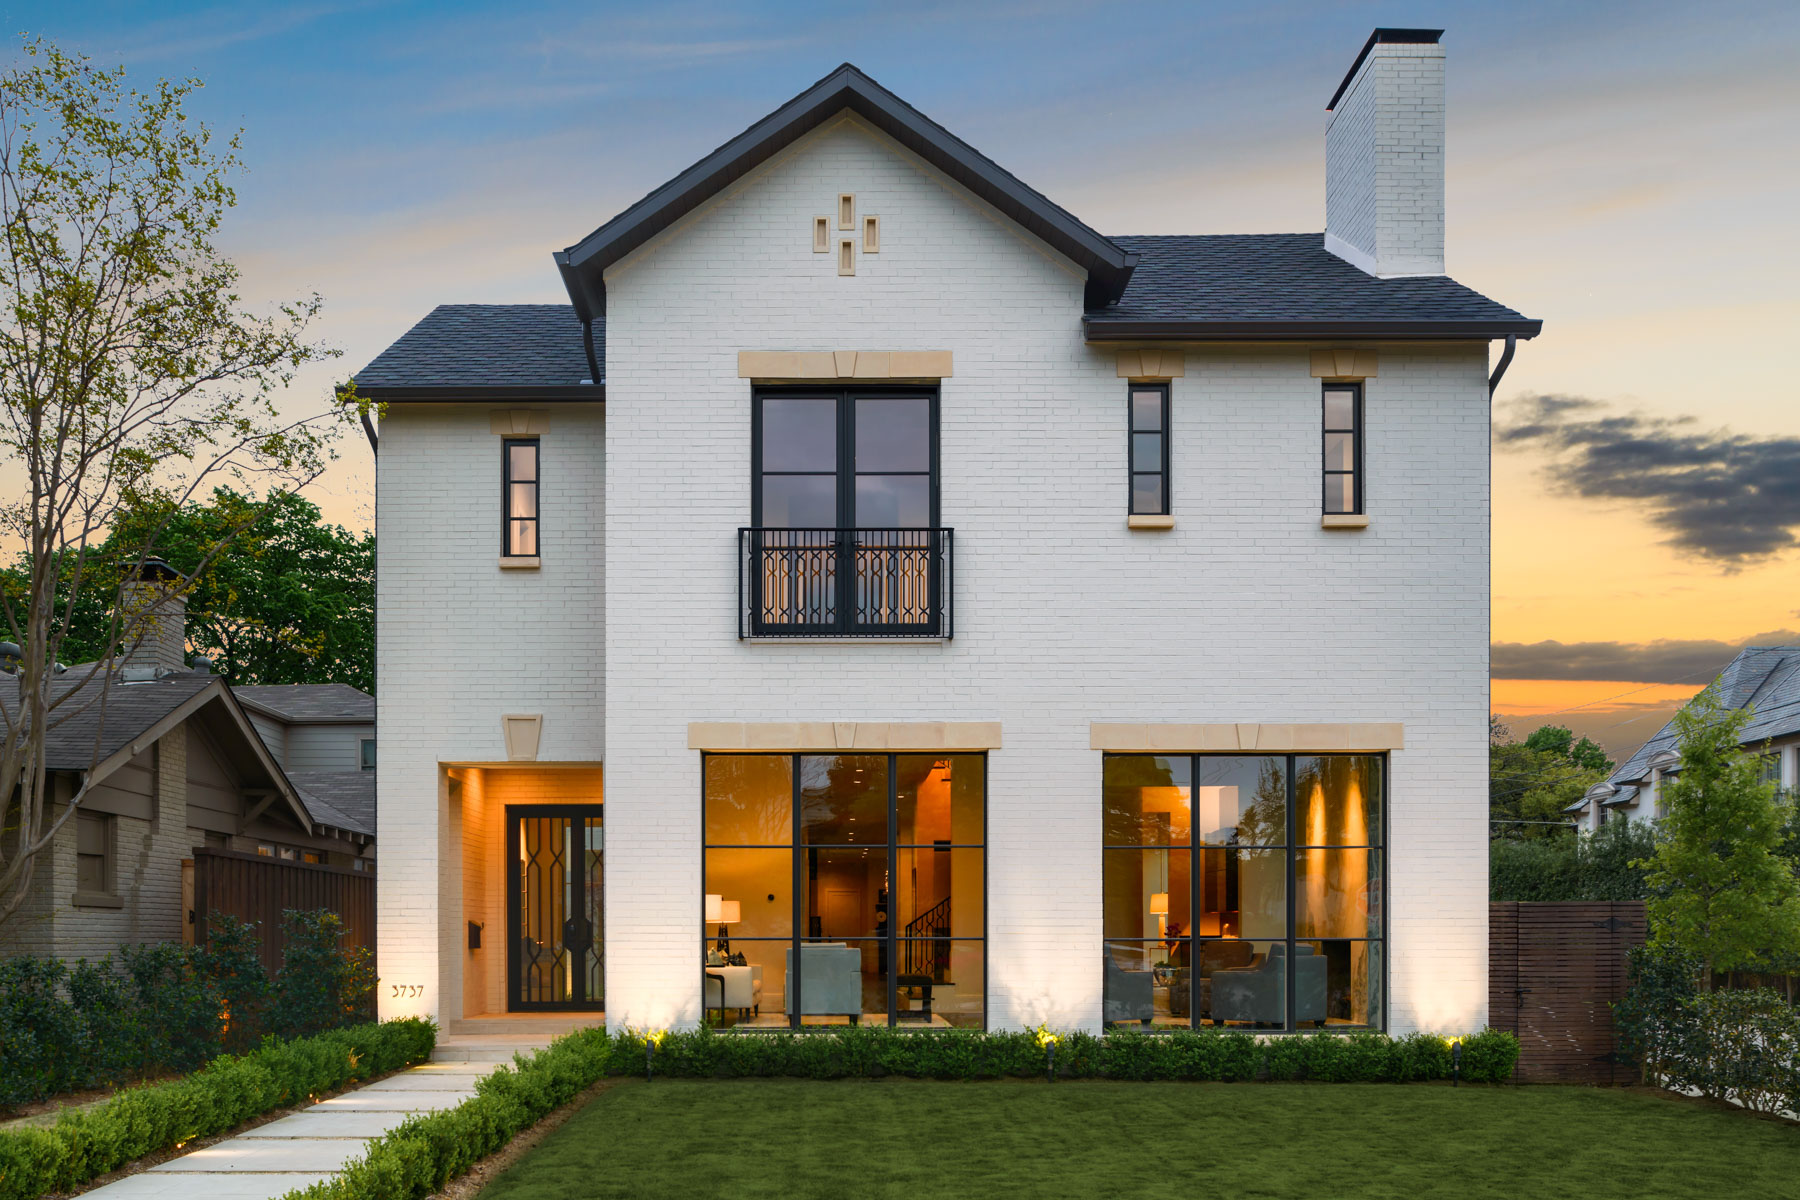 Single Family Home for Sale at One of a kind New Construction by Validus Developments 3737 Normandy Avenue, Highland Park, Texas, 75205 United States